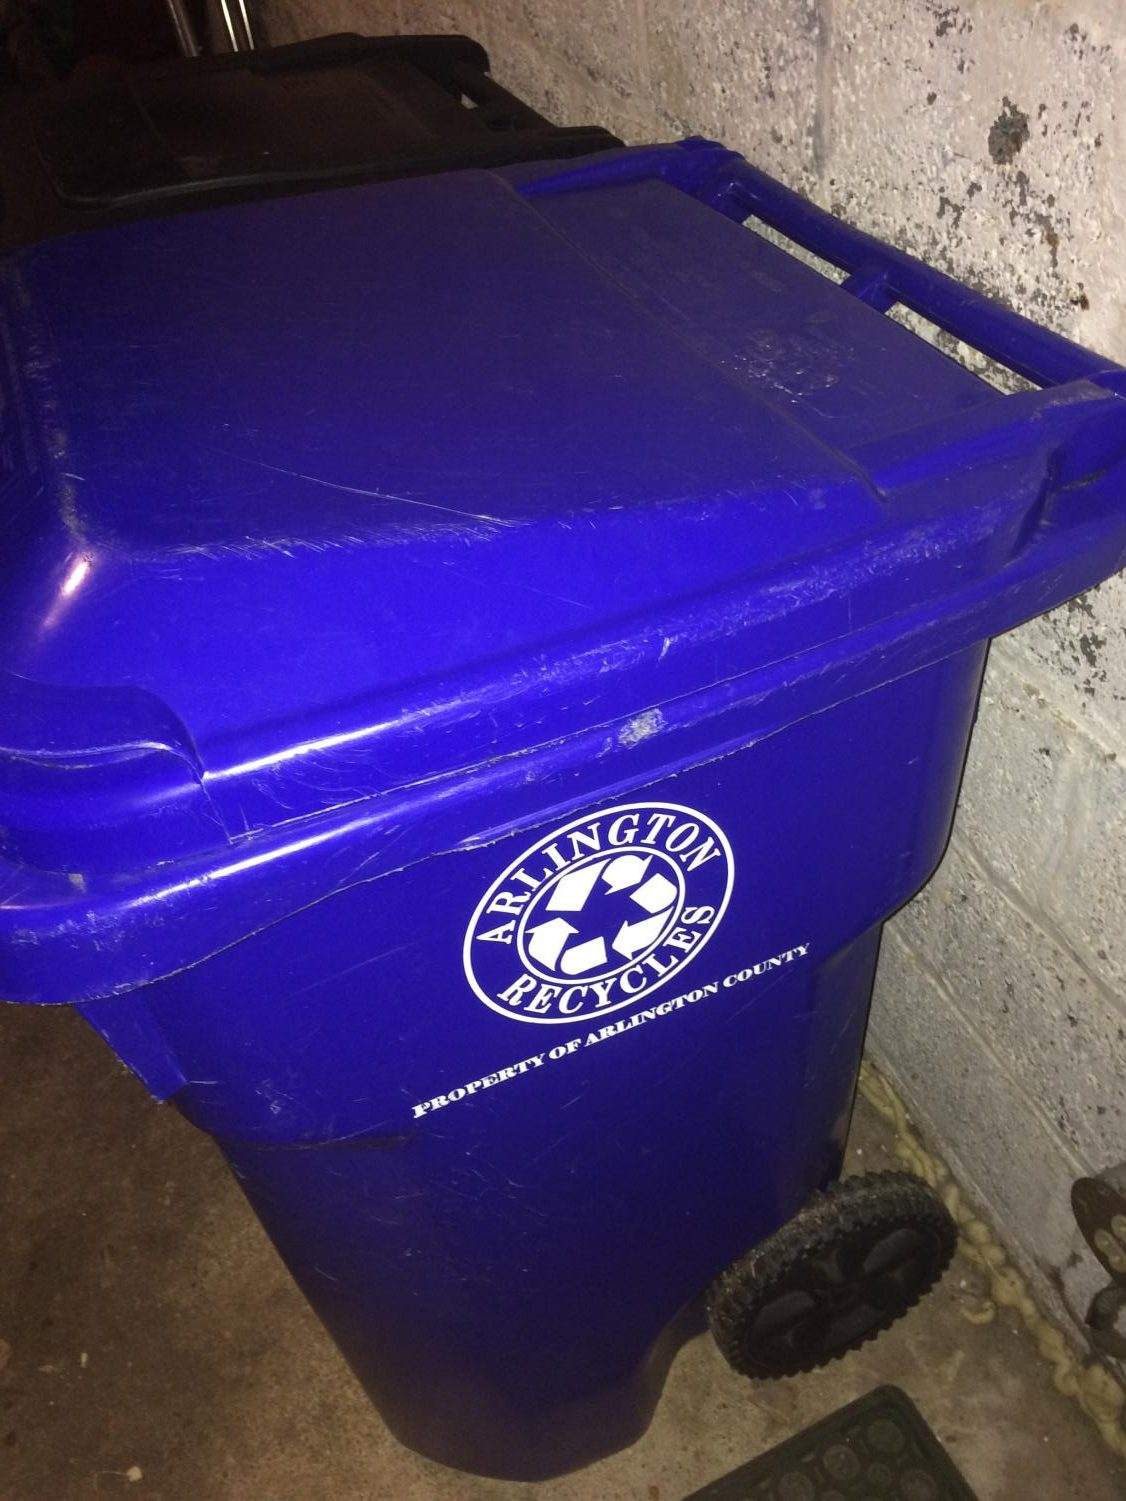 One of the recycling bins provided by the county. Arlington earns different amounts of money based on the type of items people recycle.